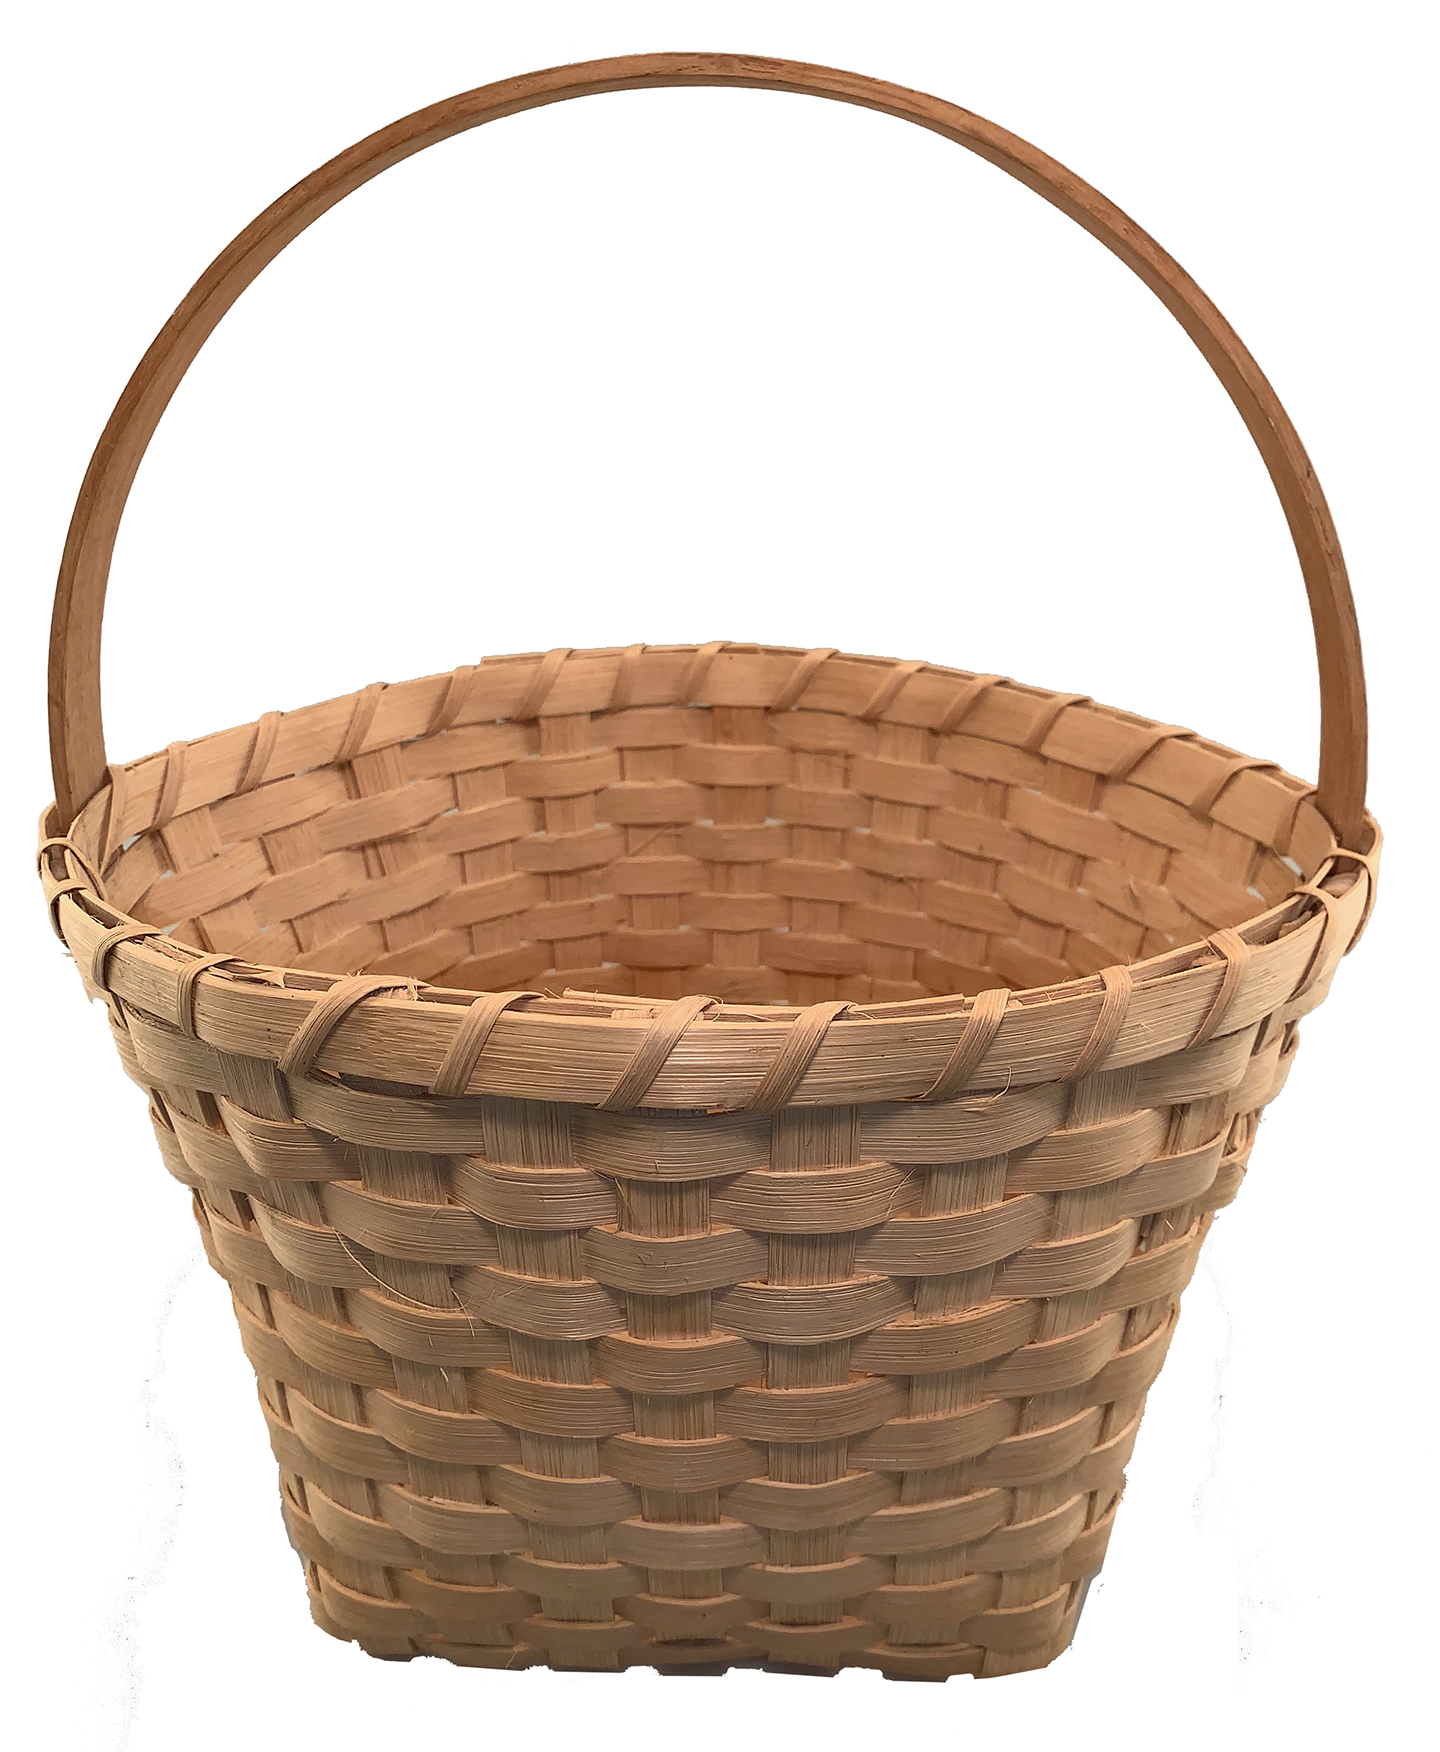 Williamsburg Basket Kit